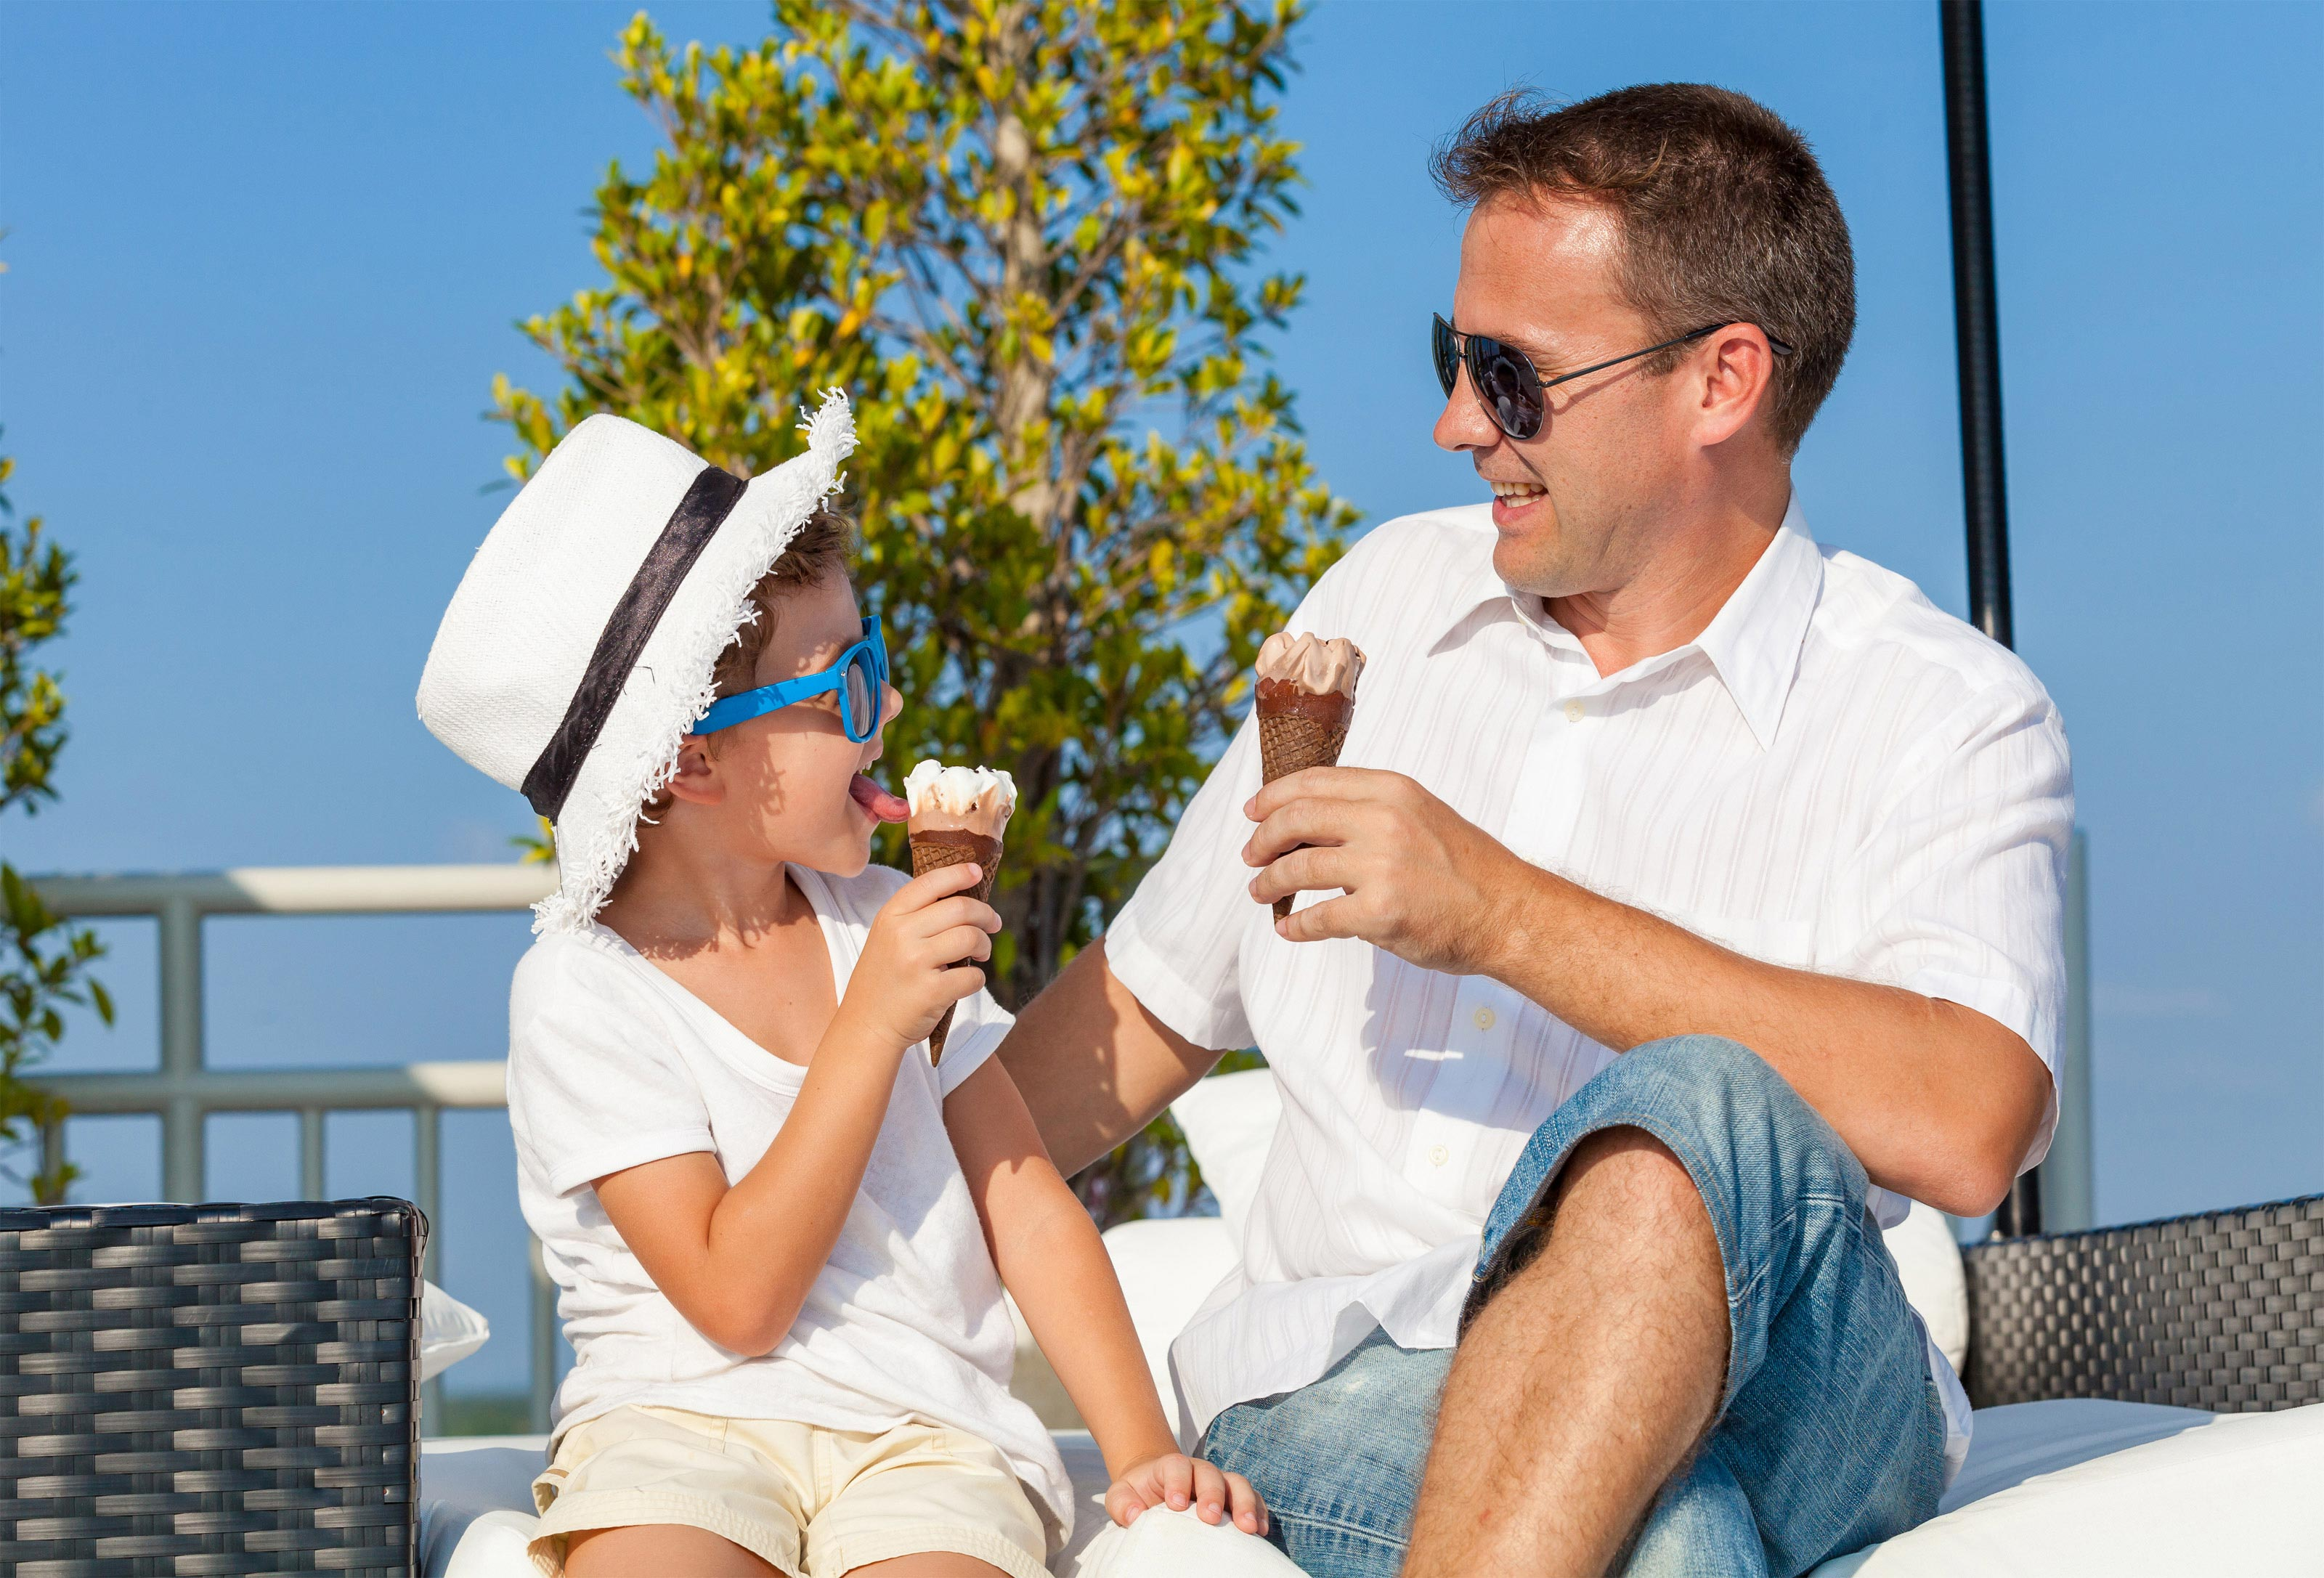 Dad and son licking ice cream